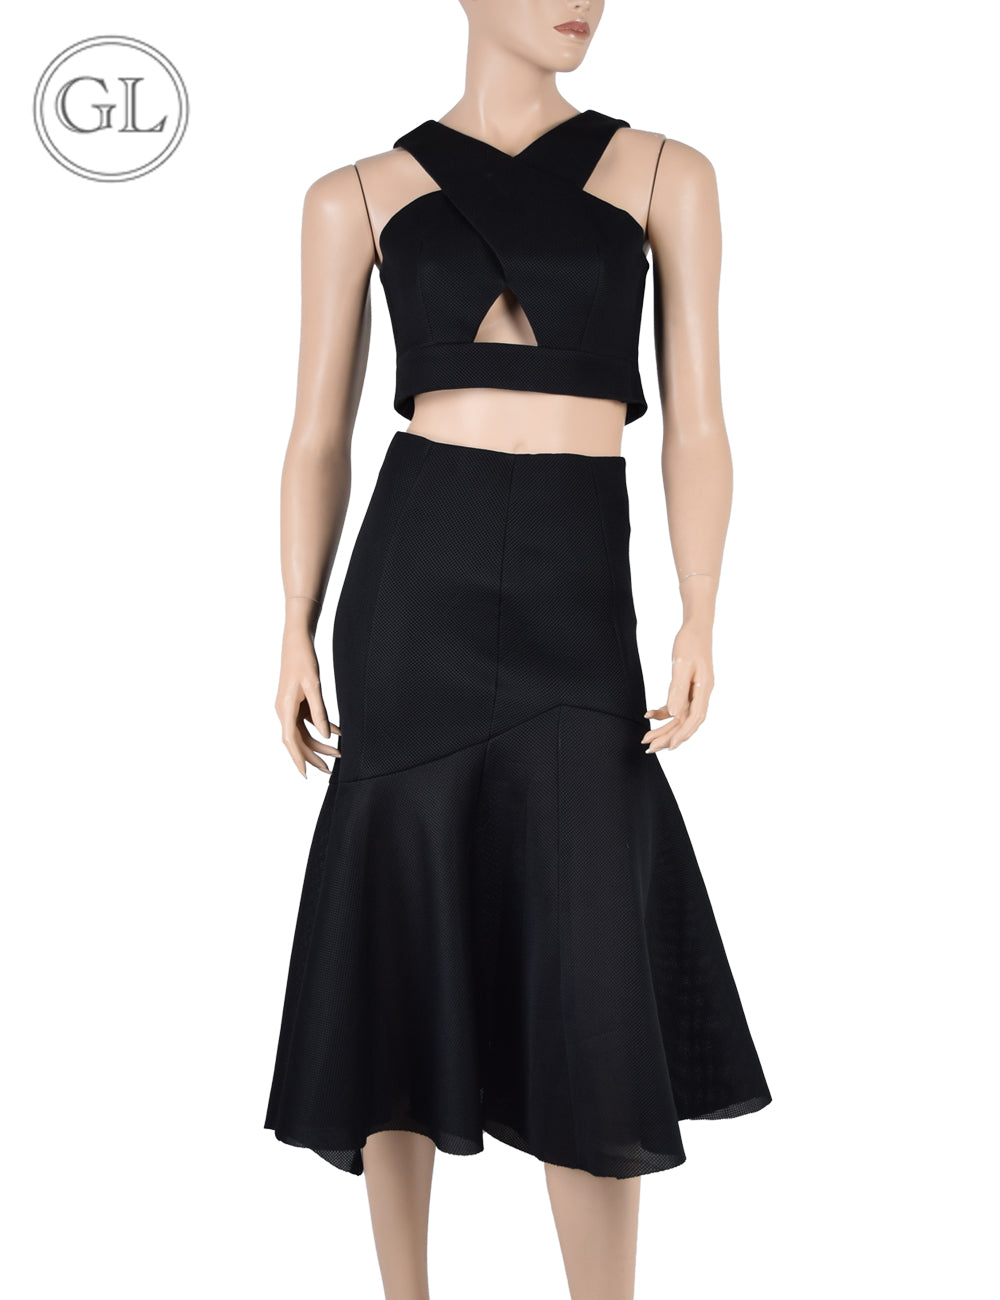 Nicholas Black Cropped Top Skirt Set - US 4